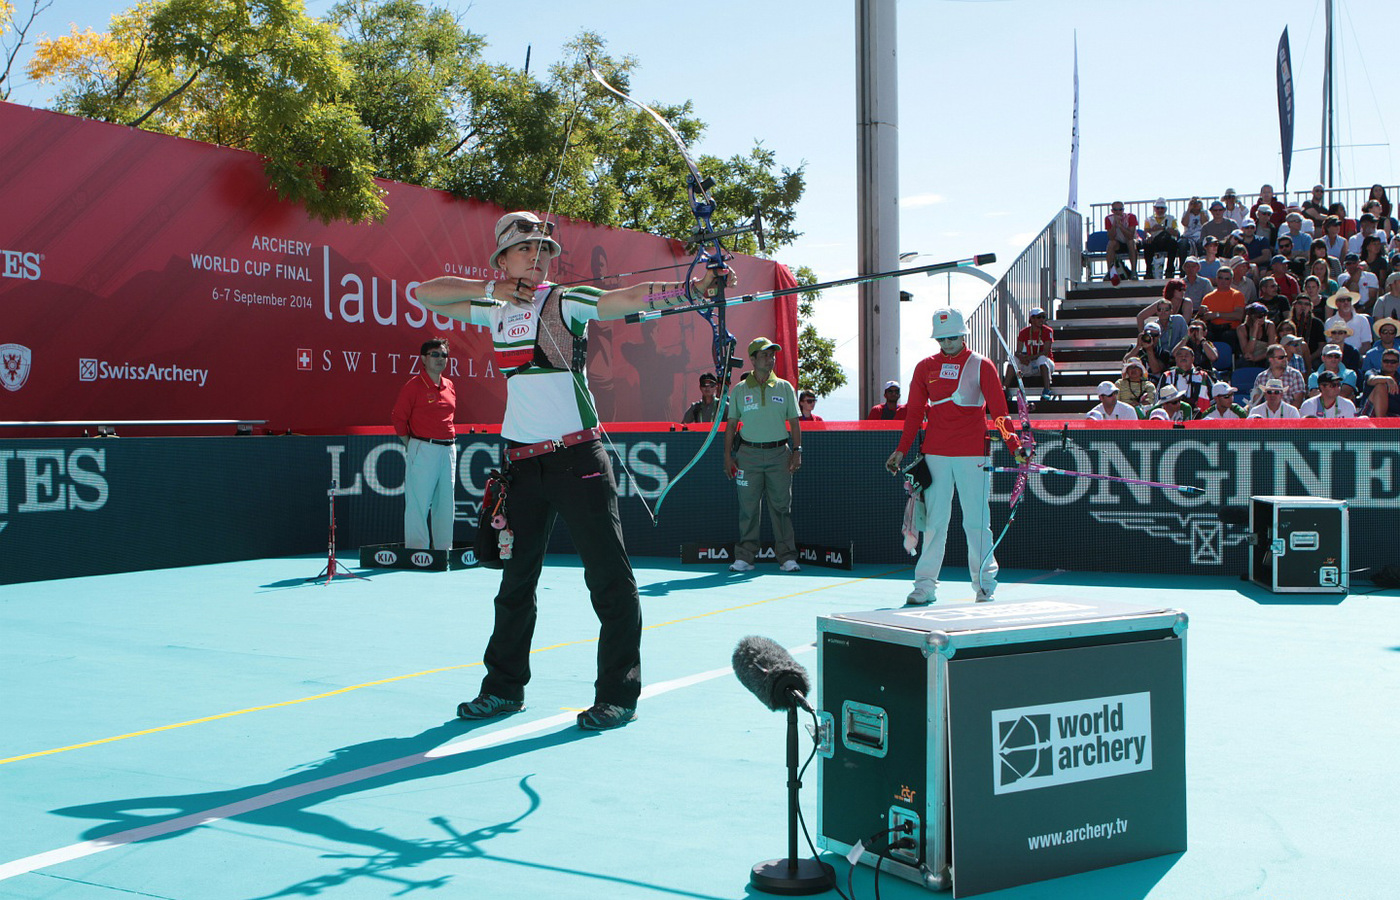 Longines Archery Event: Continuation of partnership between Longines and World Archery and presentation of the 2014 Longines Prize for Precision in Lausanne 4